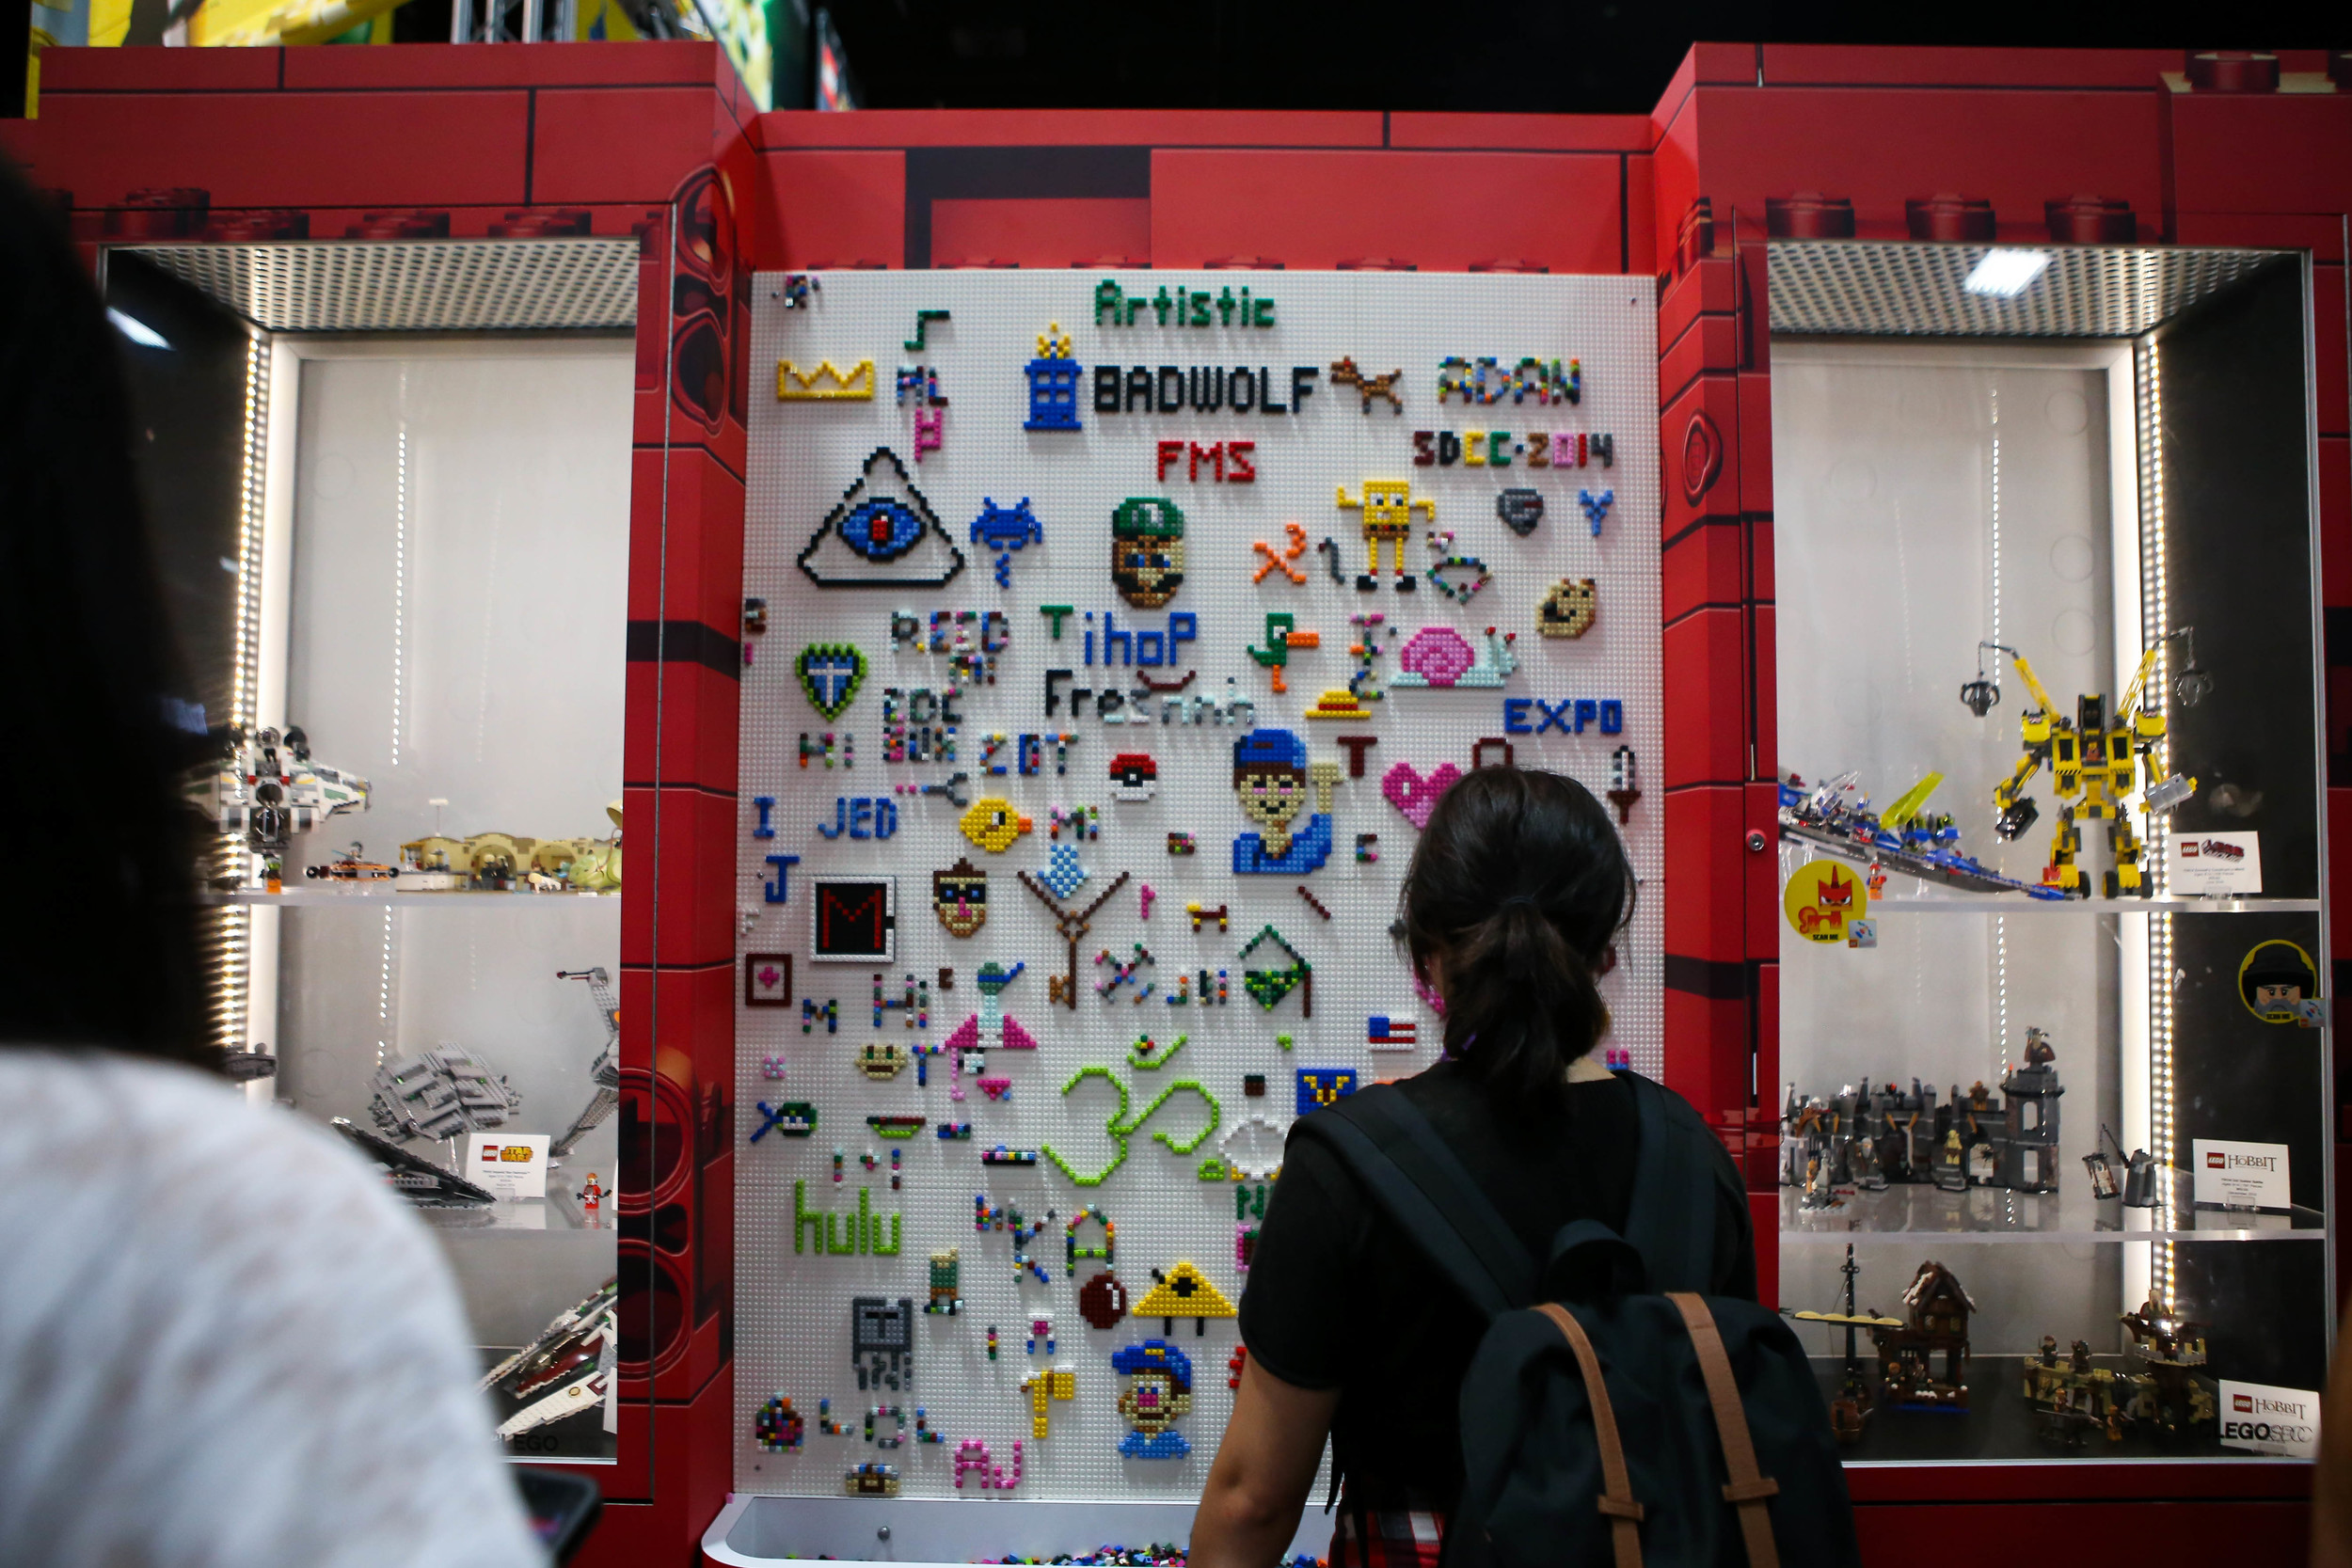 People getting intense on the Lego wall.